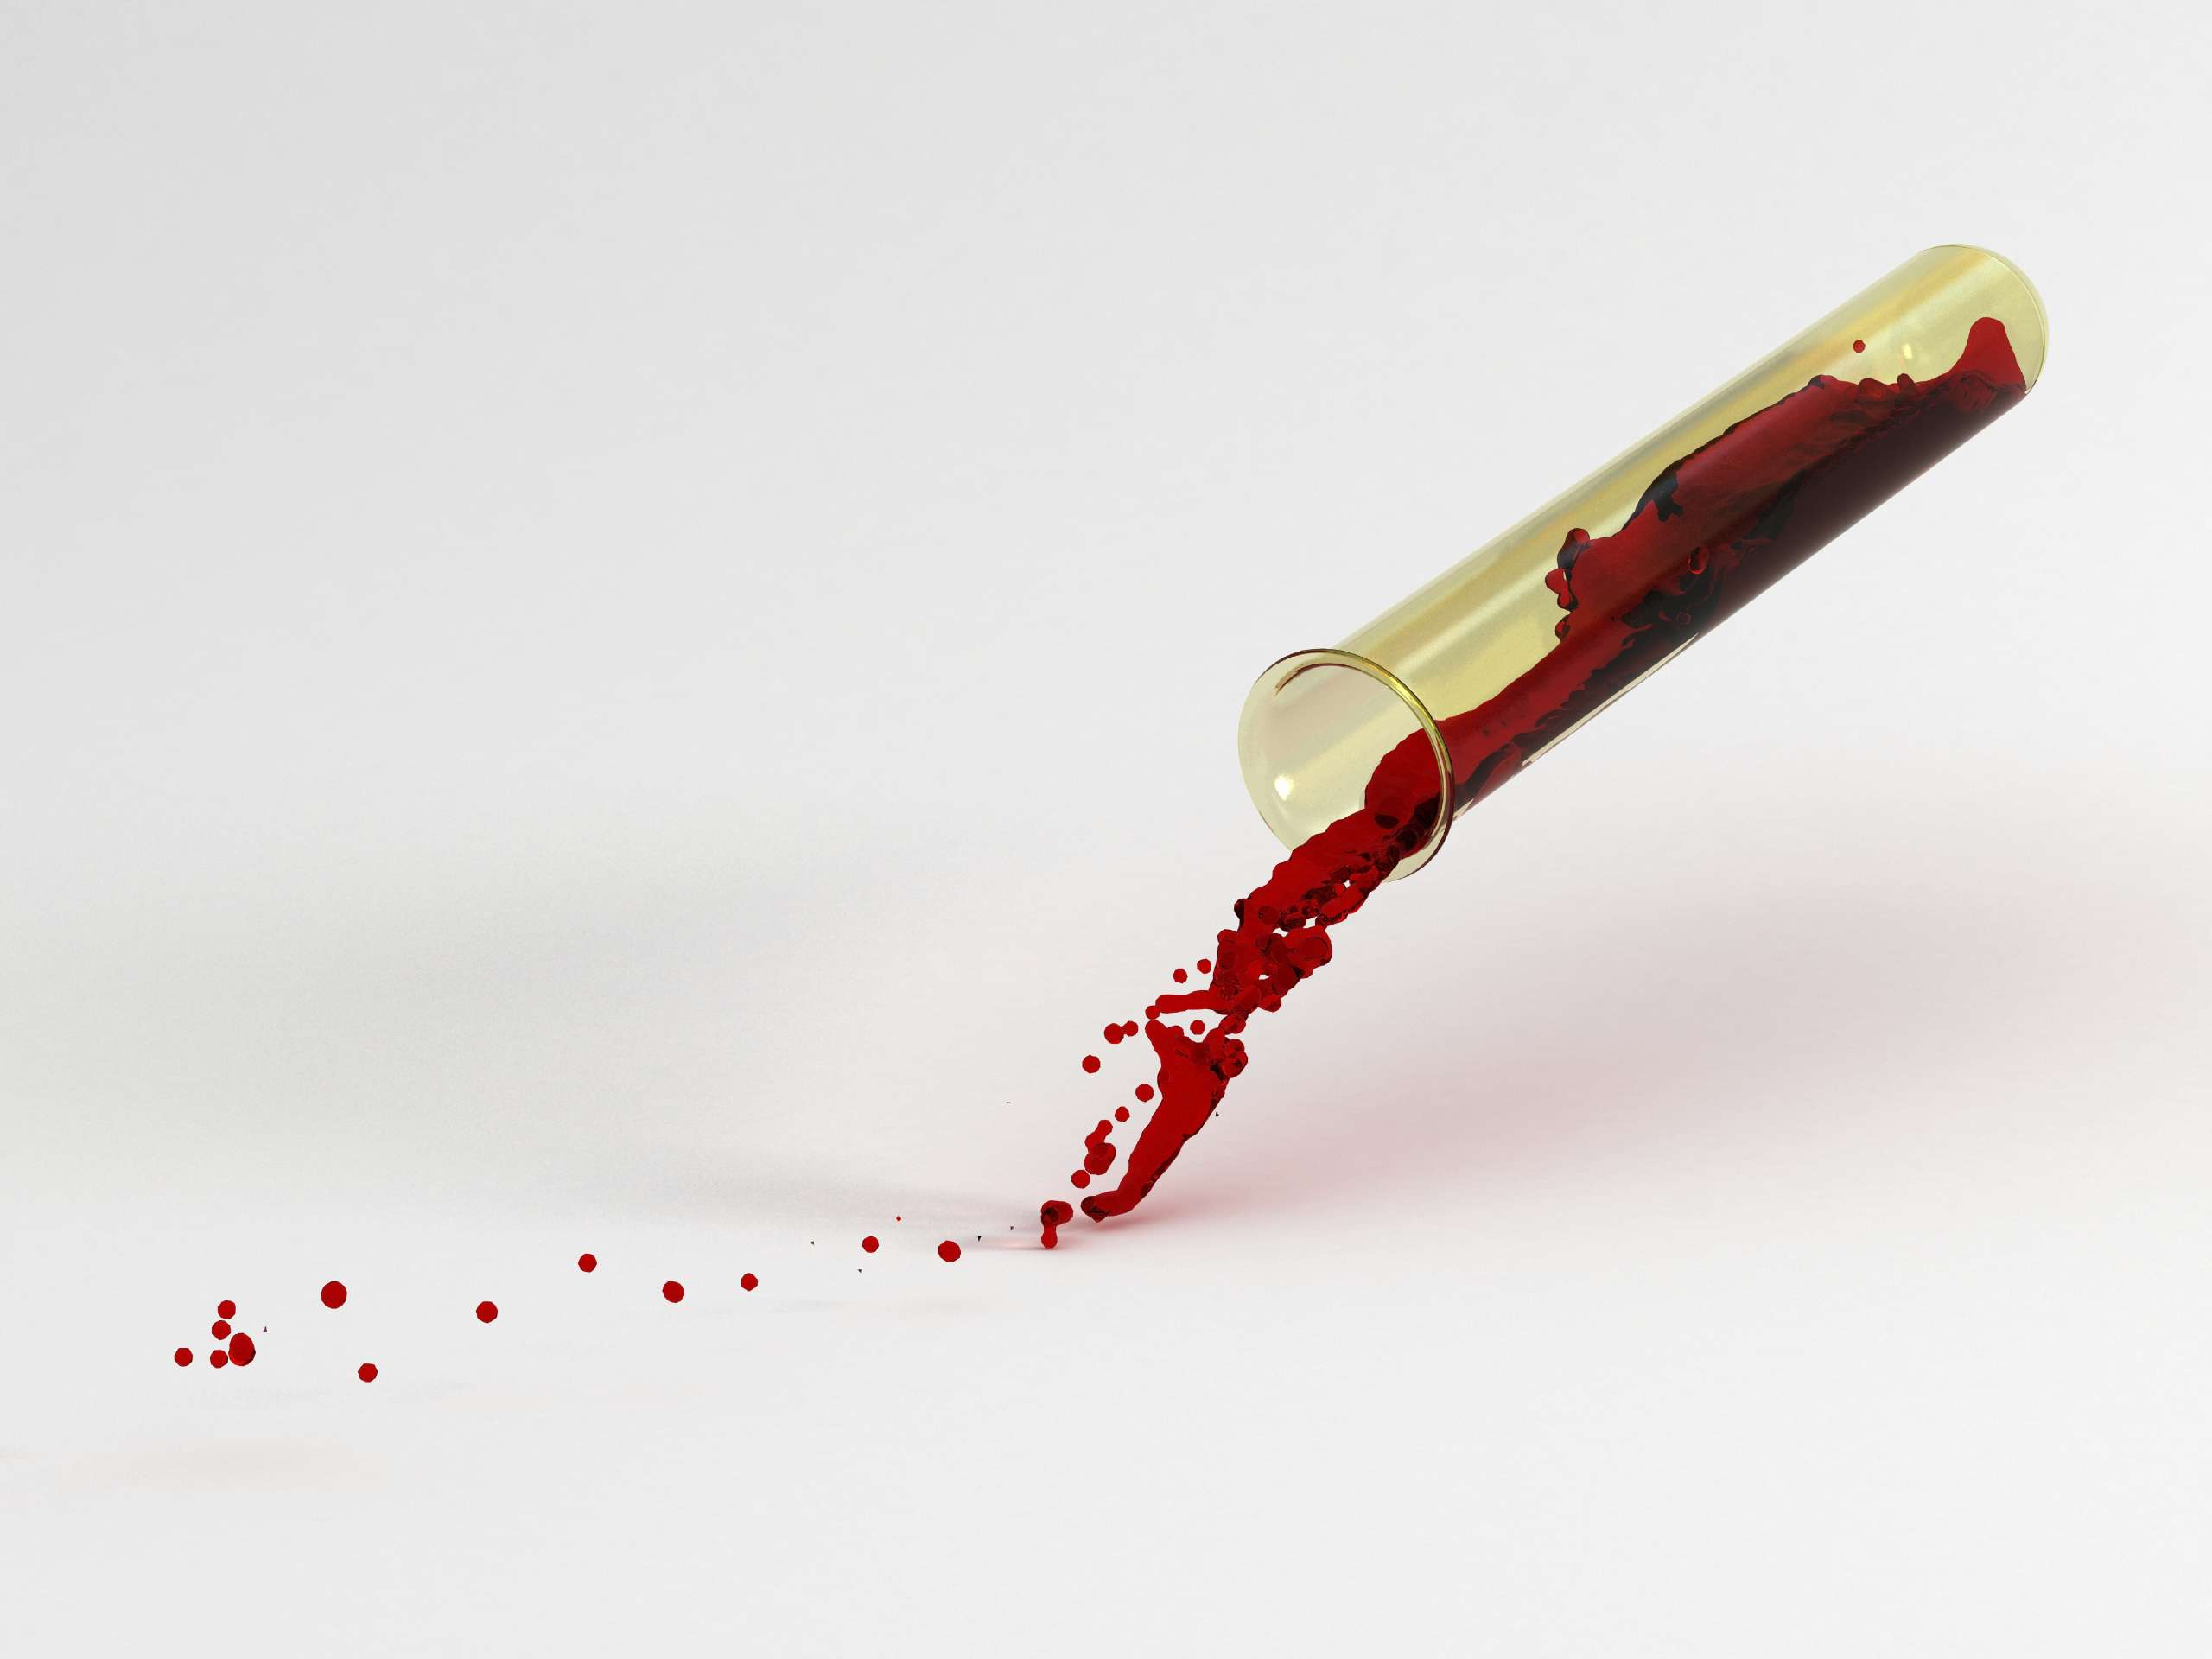 Test tube filled with blood